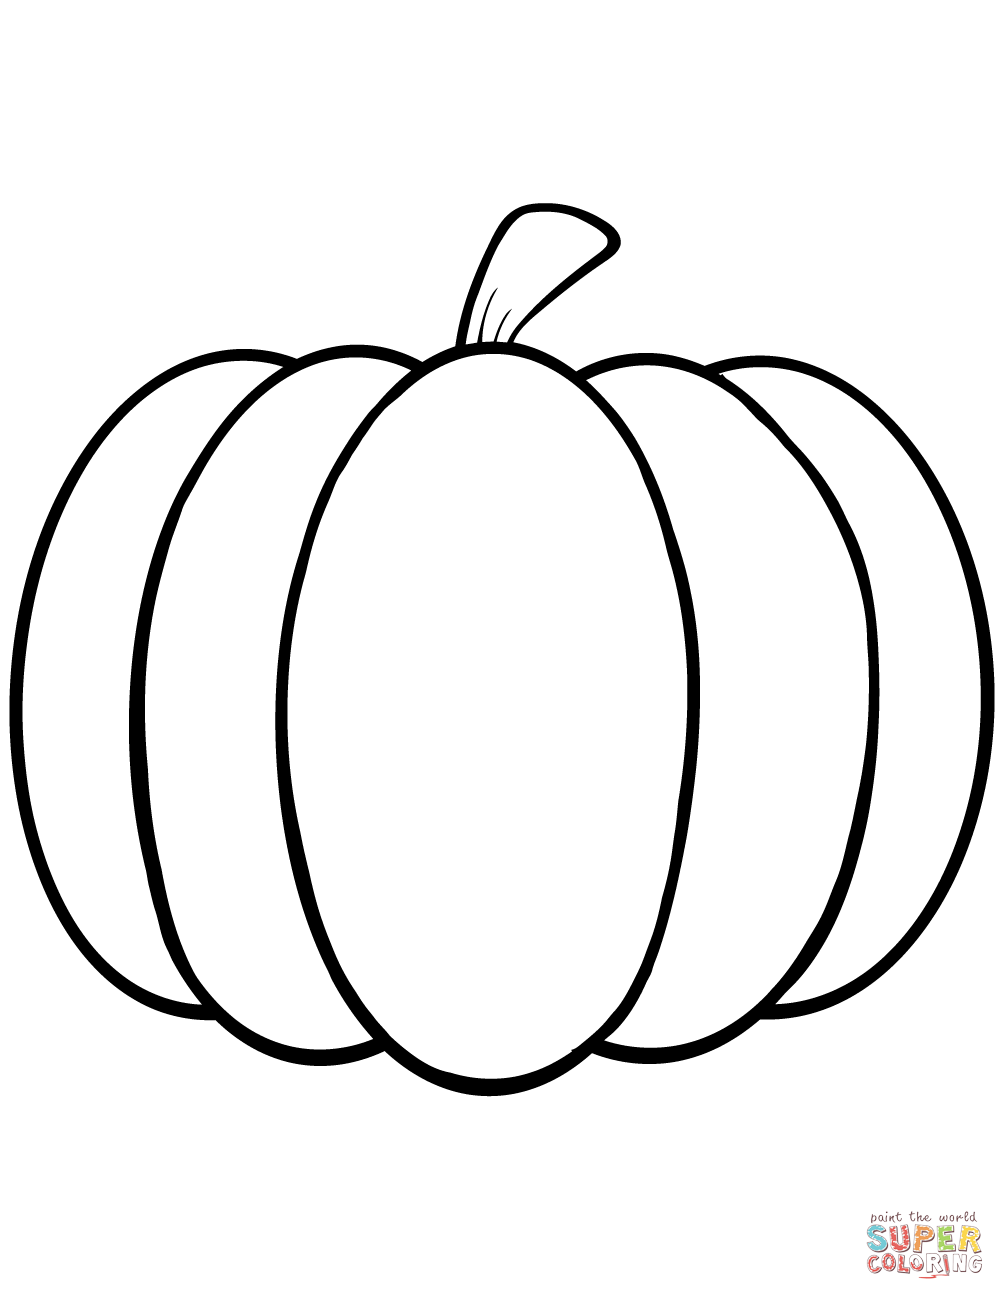 pumpkins coloring pages scary pumpkin coloring page free printable coloring pages pumpkins pages coloring